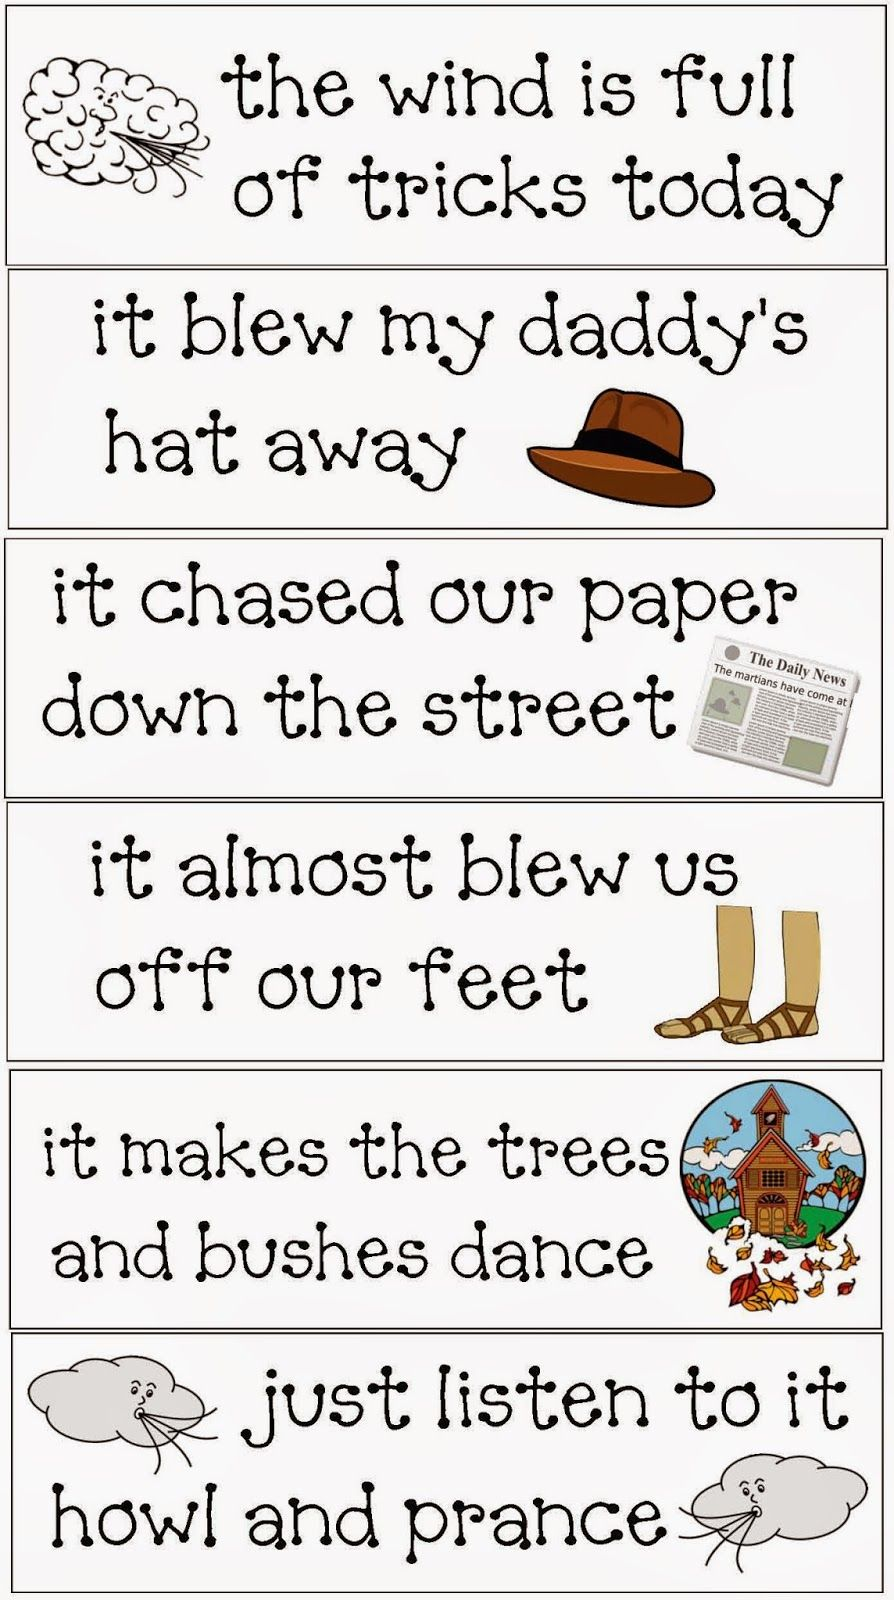 Wind Tricks Poetry Packet | Pinterest | Classroom freebies, Weather ...